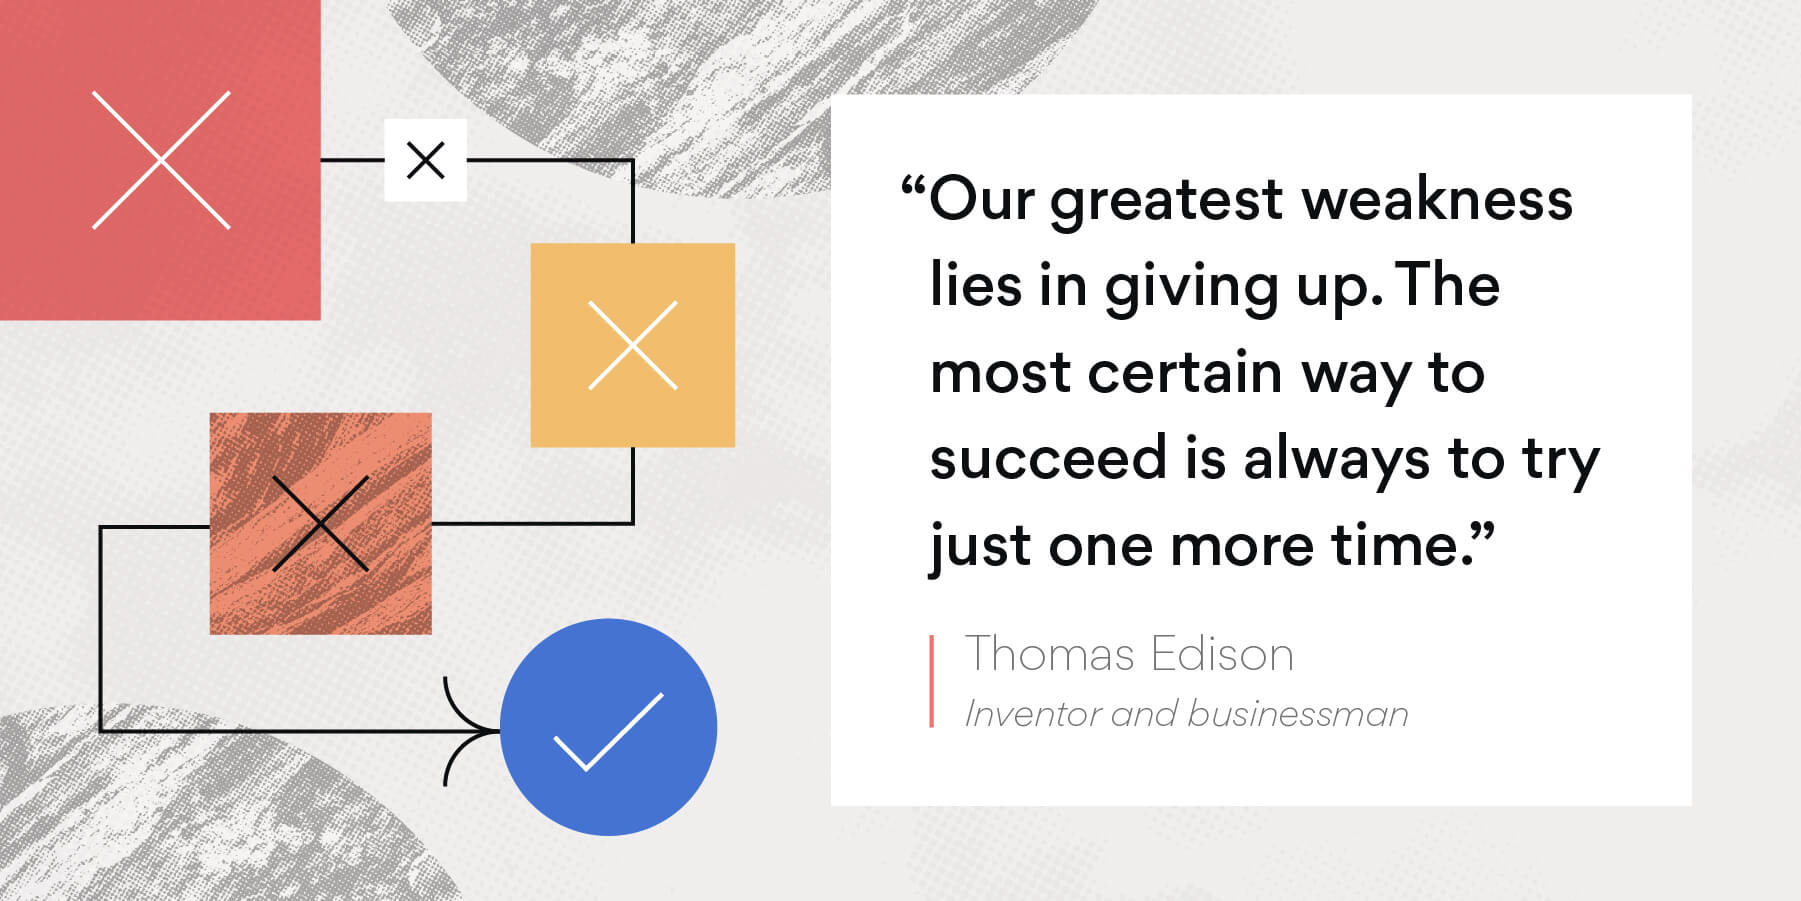 Team motivational quotes image quote by Tomas Edison